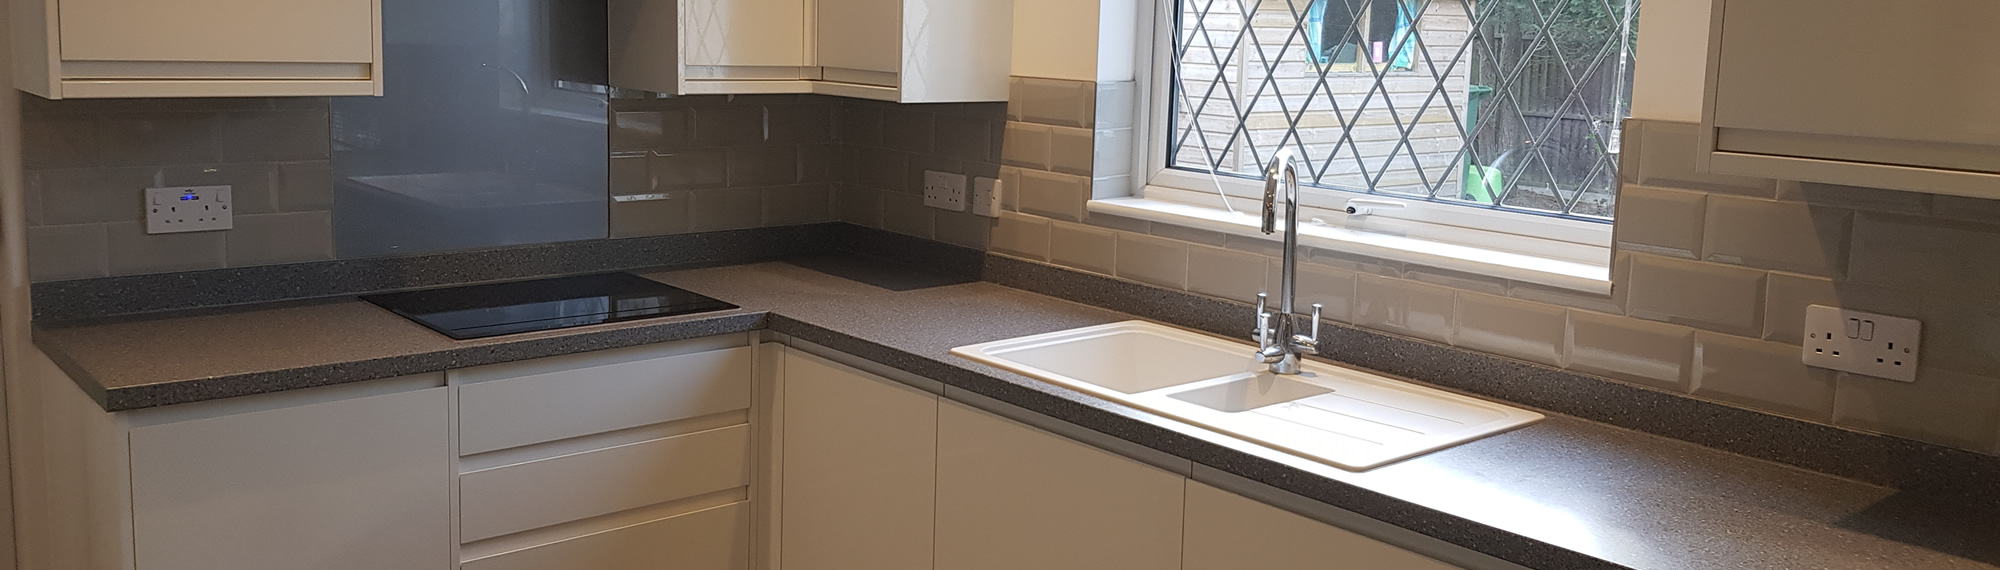 Domestic Tiler in Woking by ST Tiling